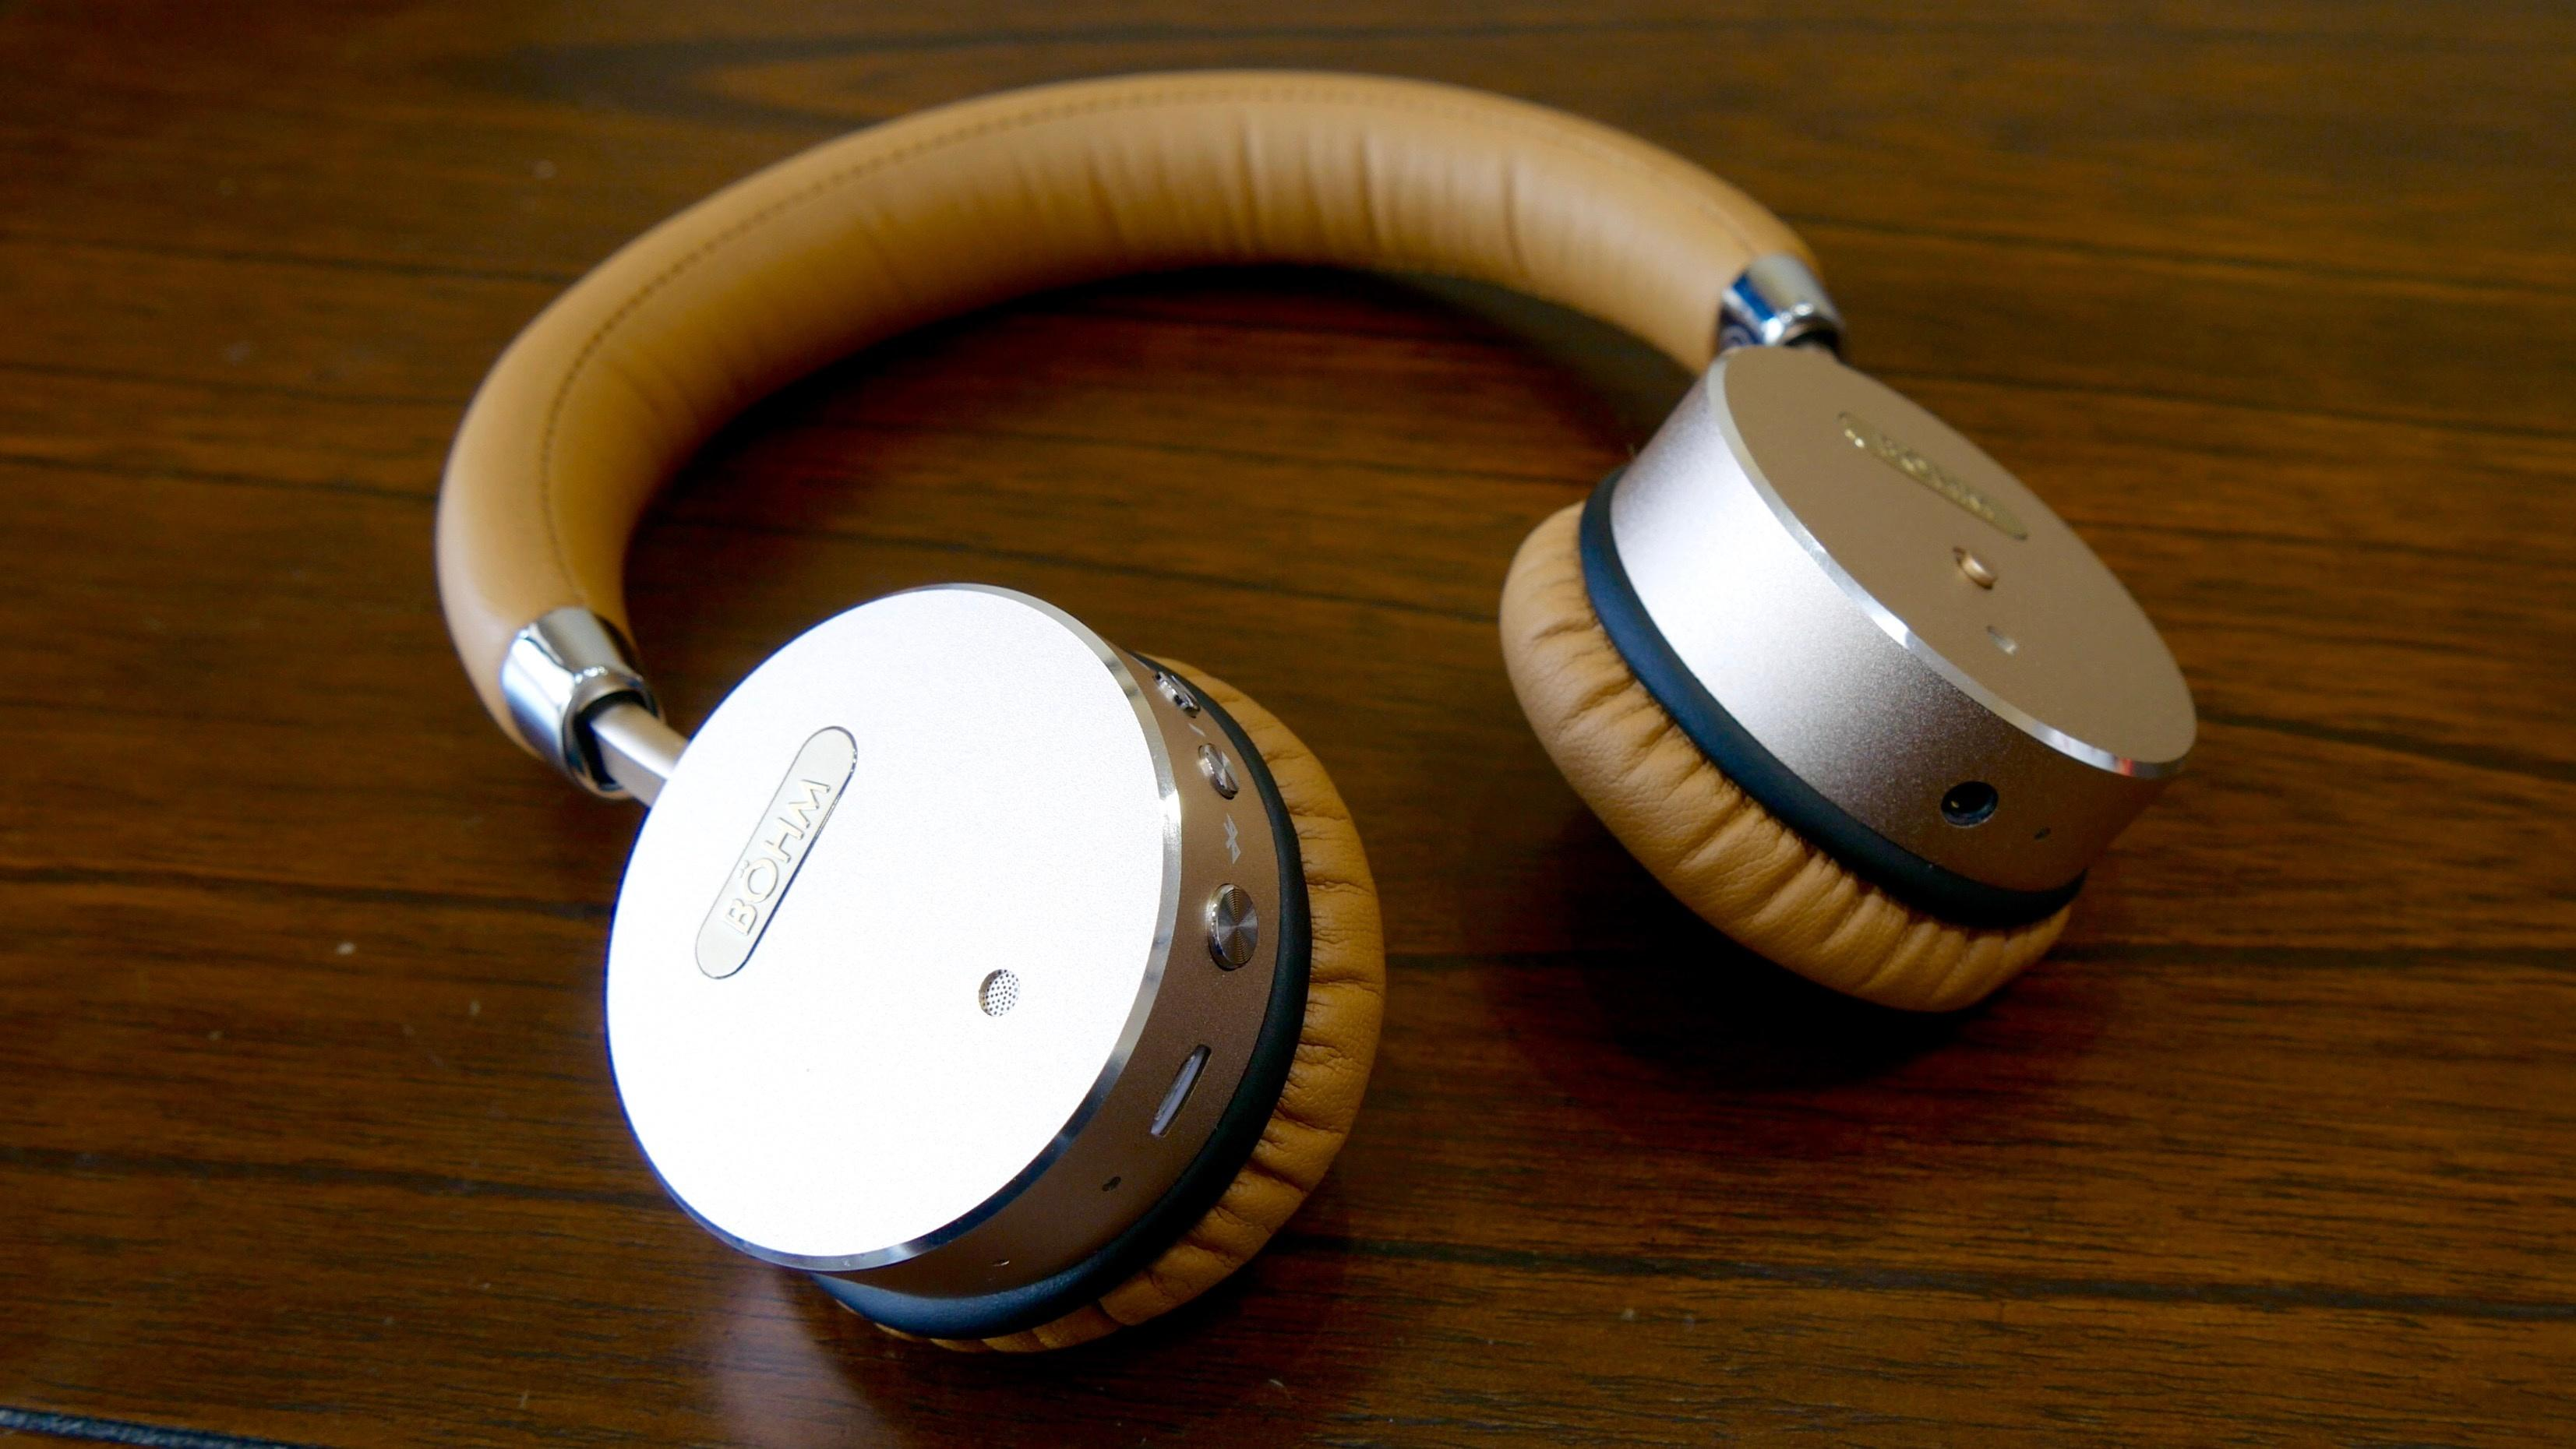 Böhm B66 Bluetooth headphones prove style and substance can be had under $100